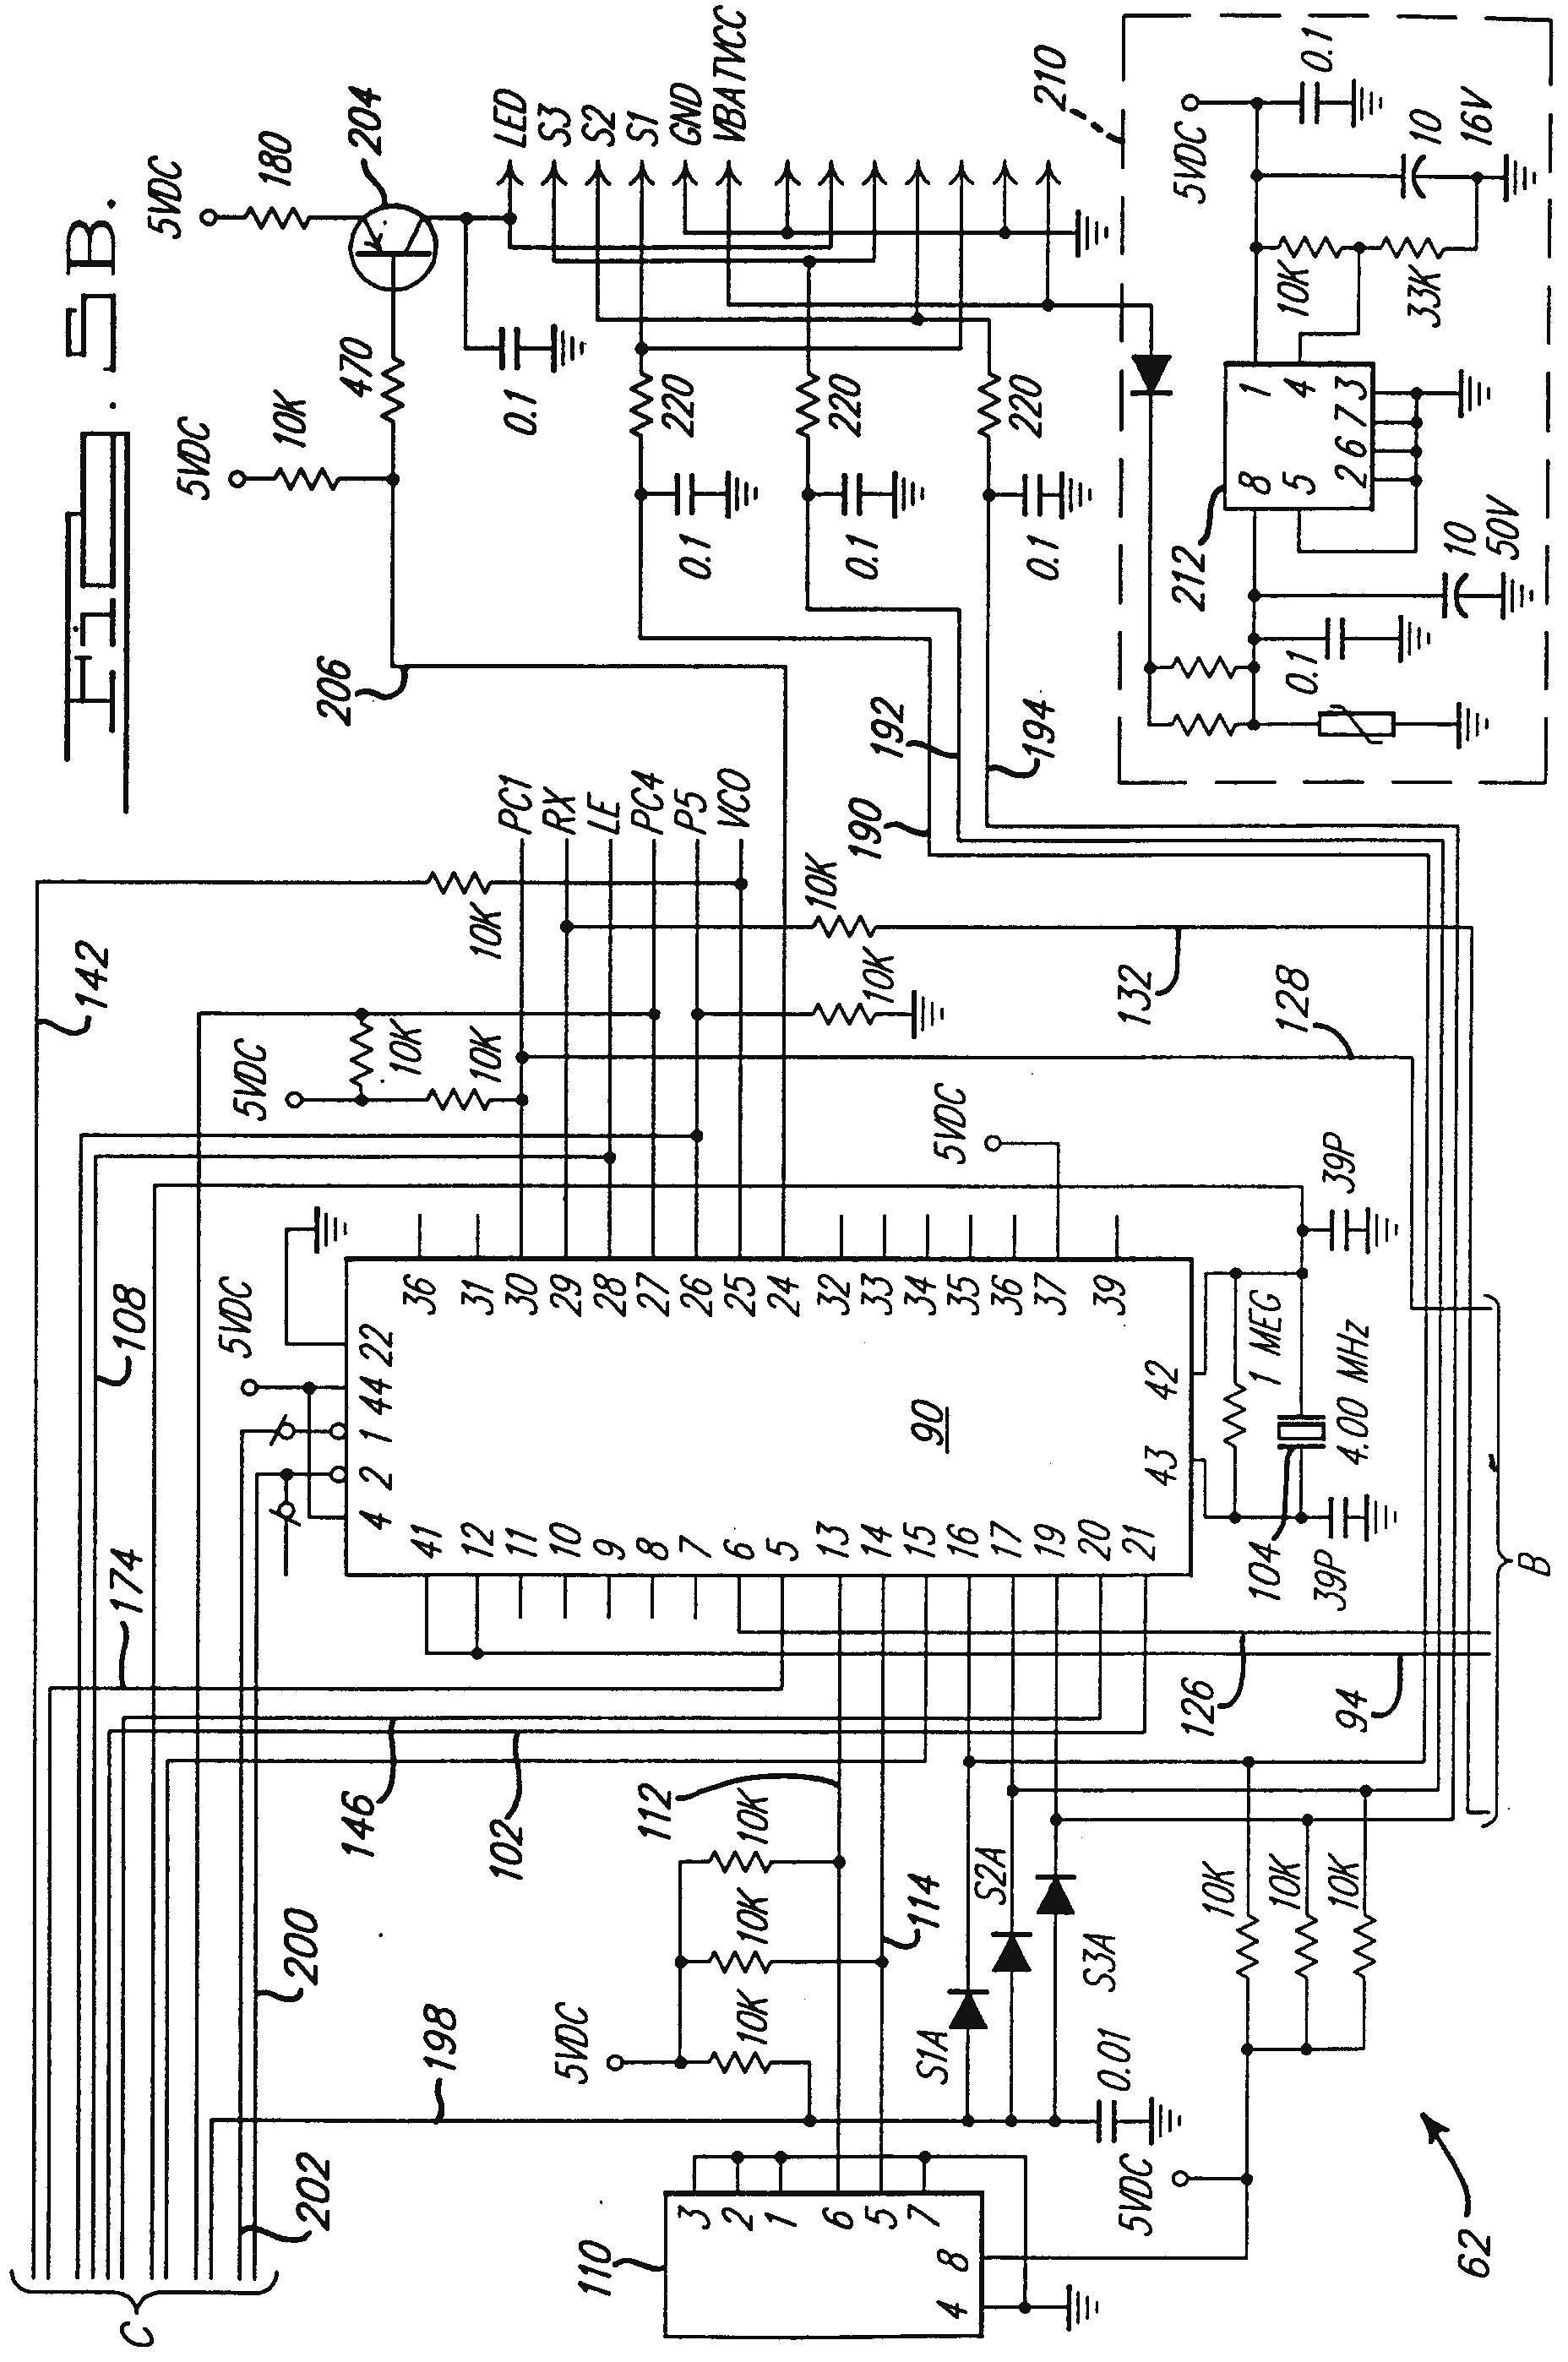 making wiring schematics